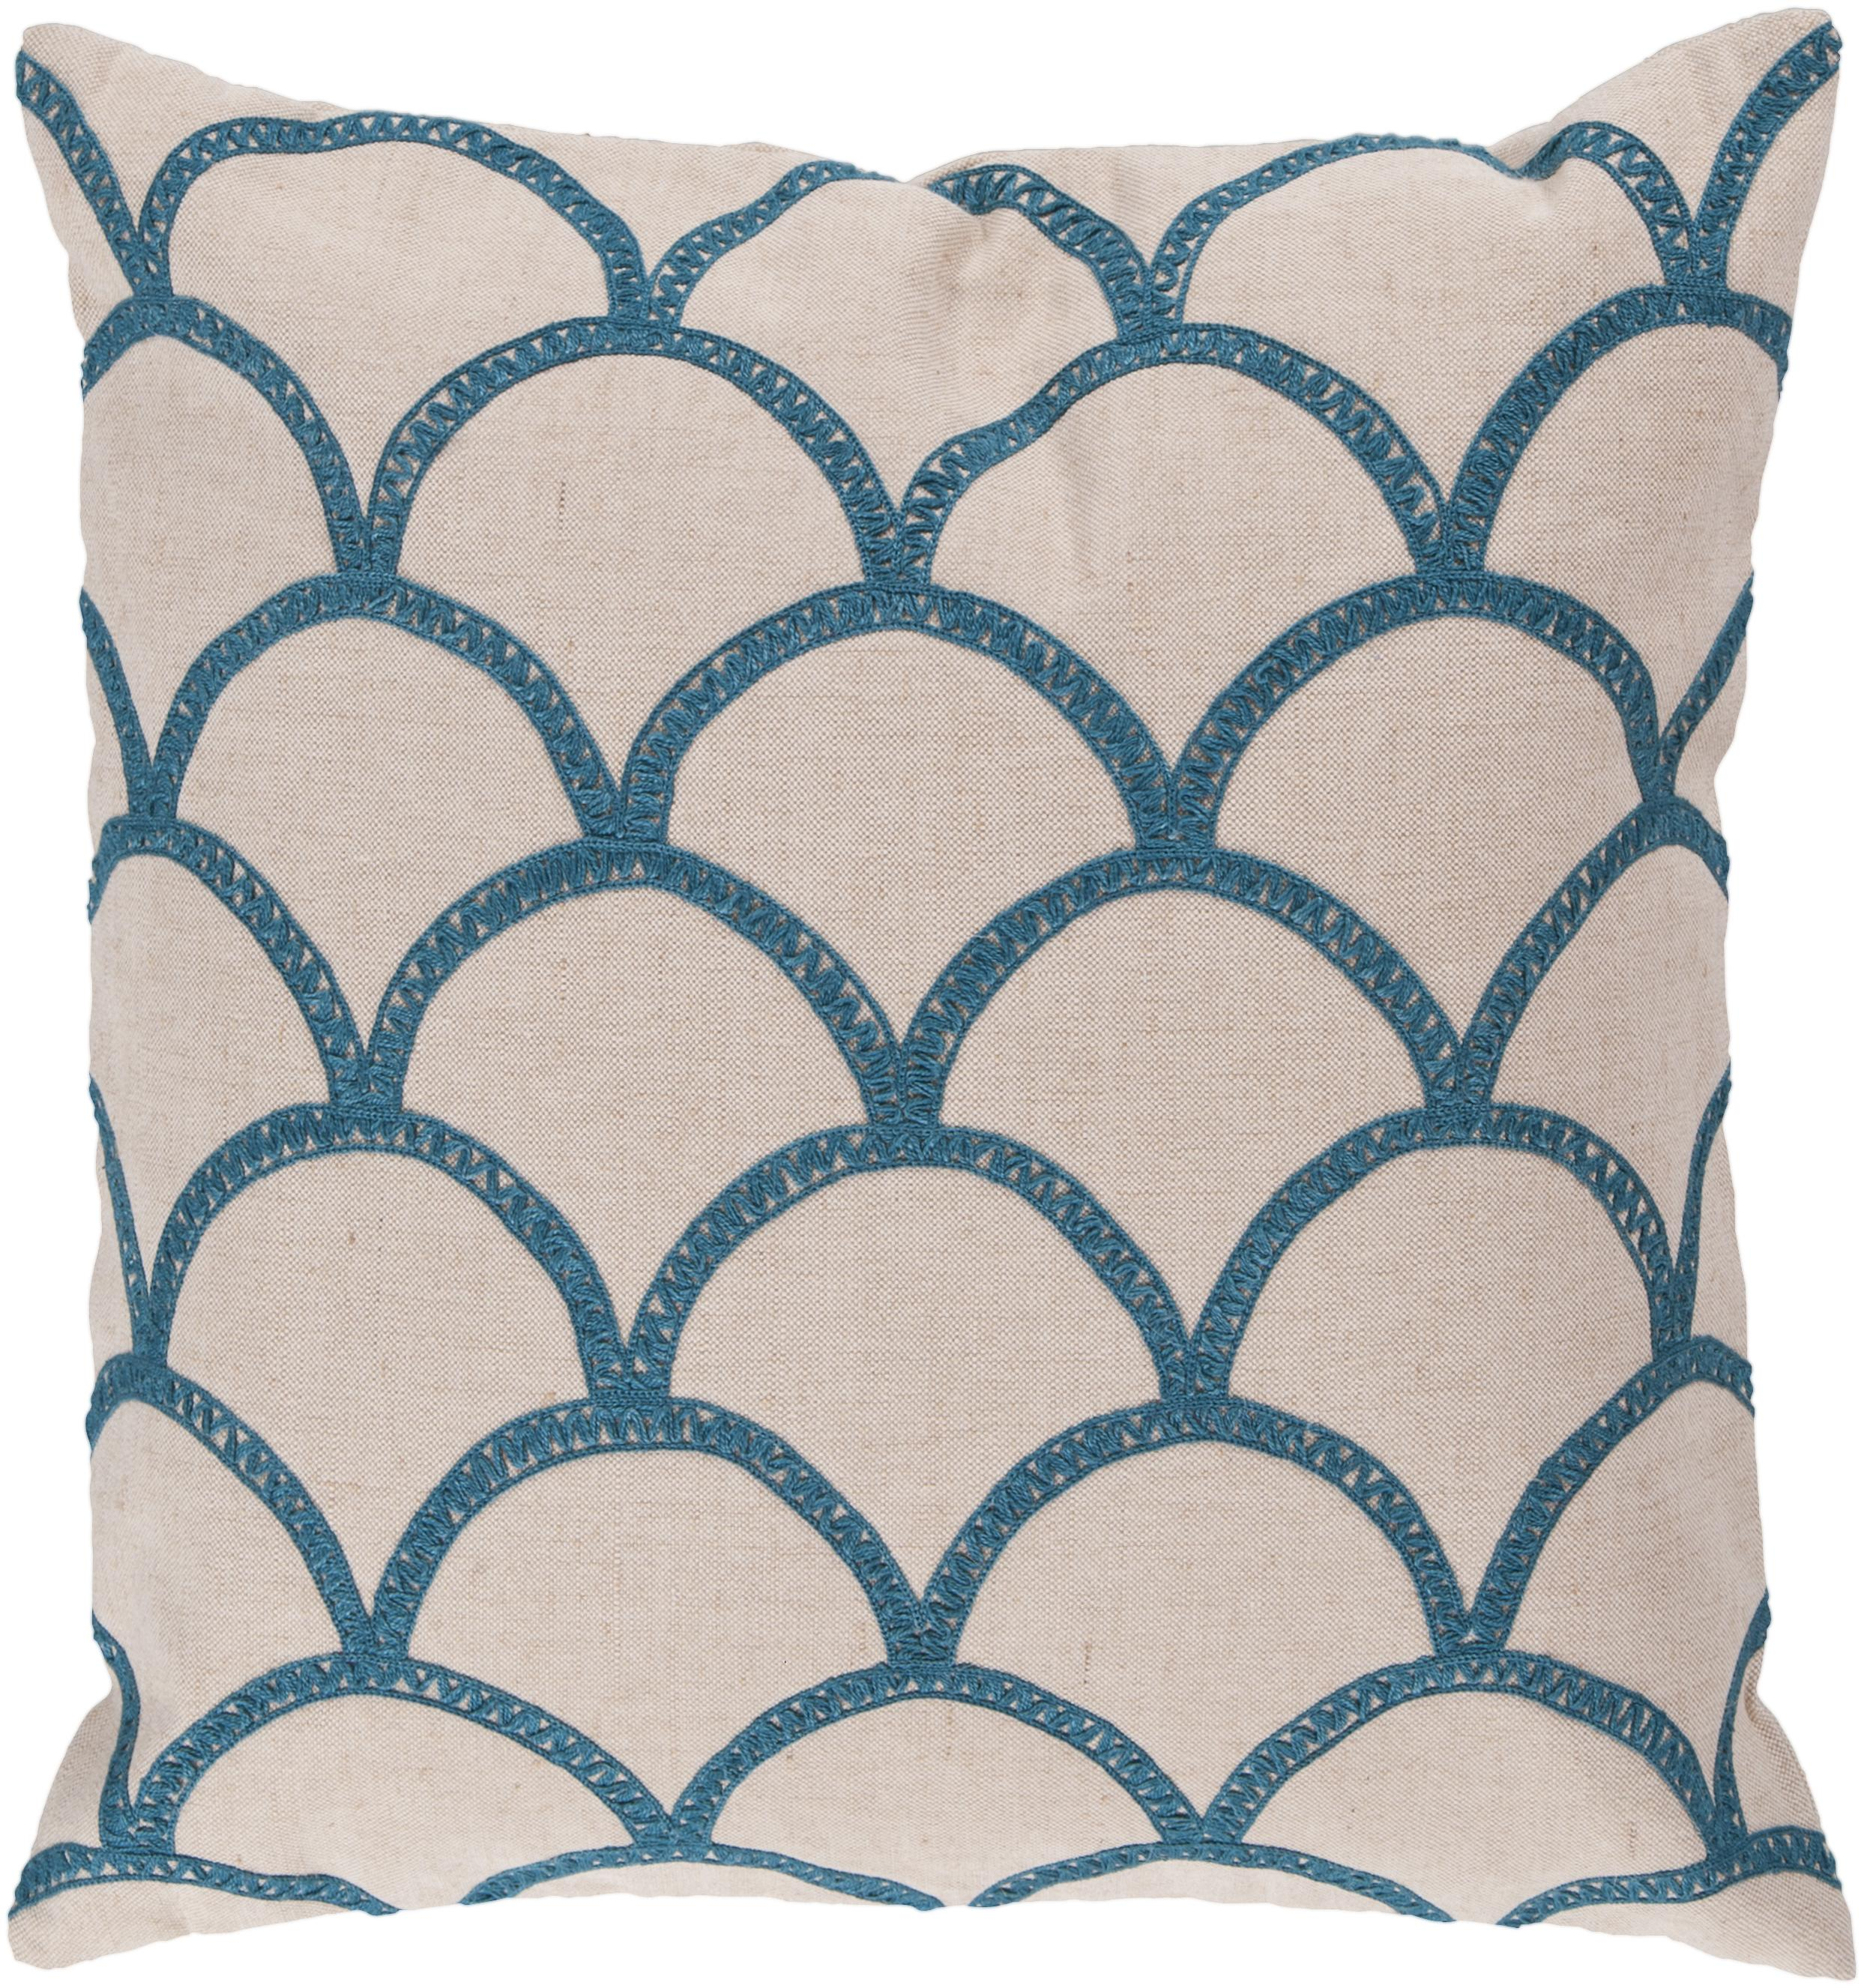 "Surya Rugs Pillows 22"" x 22"" Pillow - Item Number: COM007-2222P"